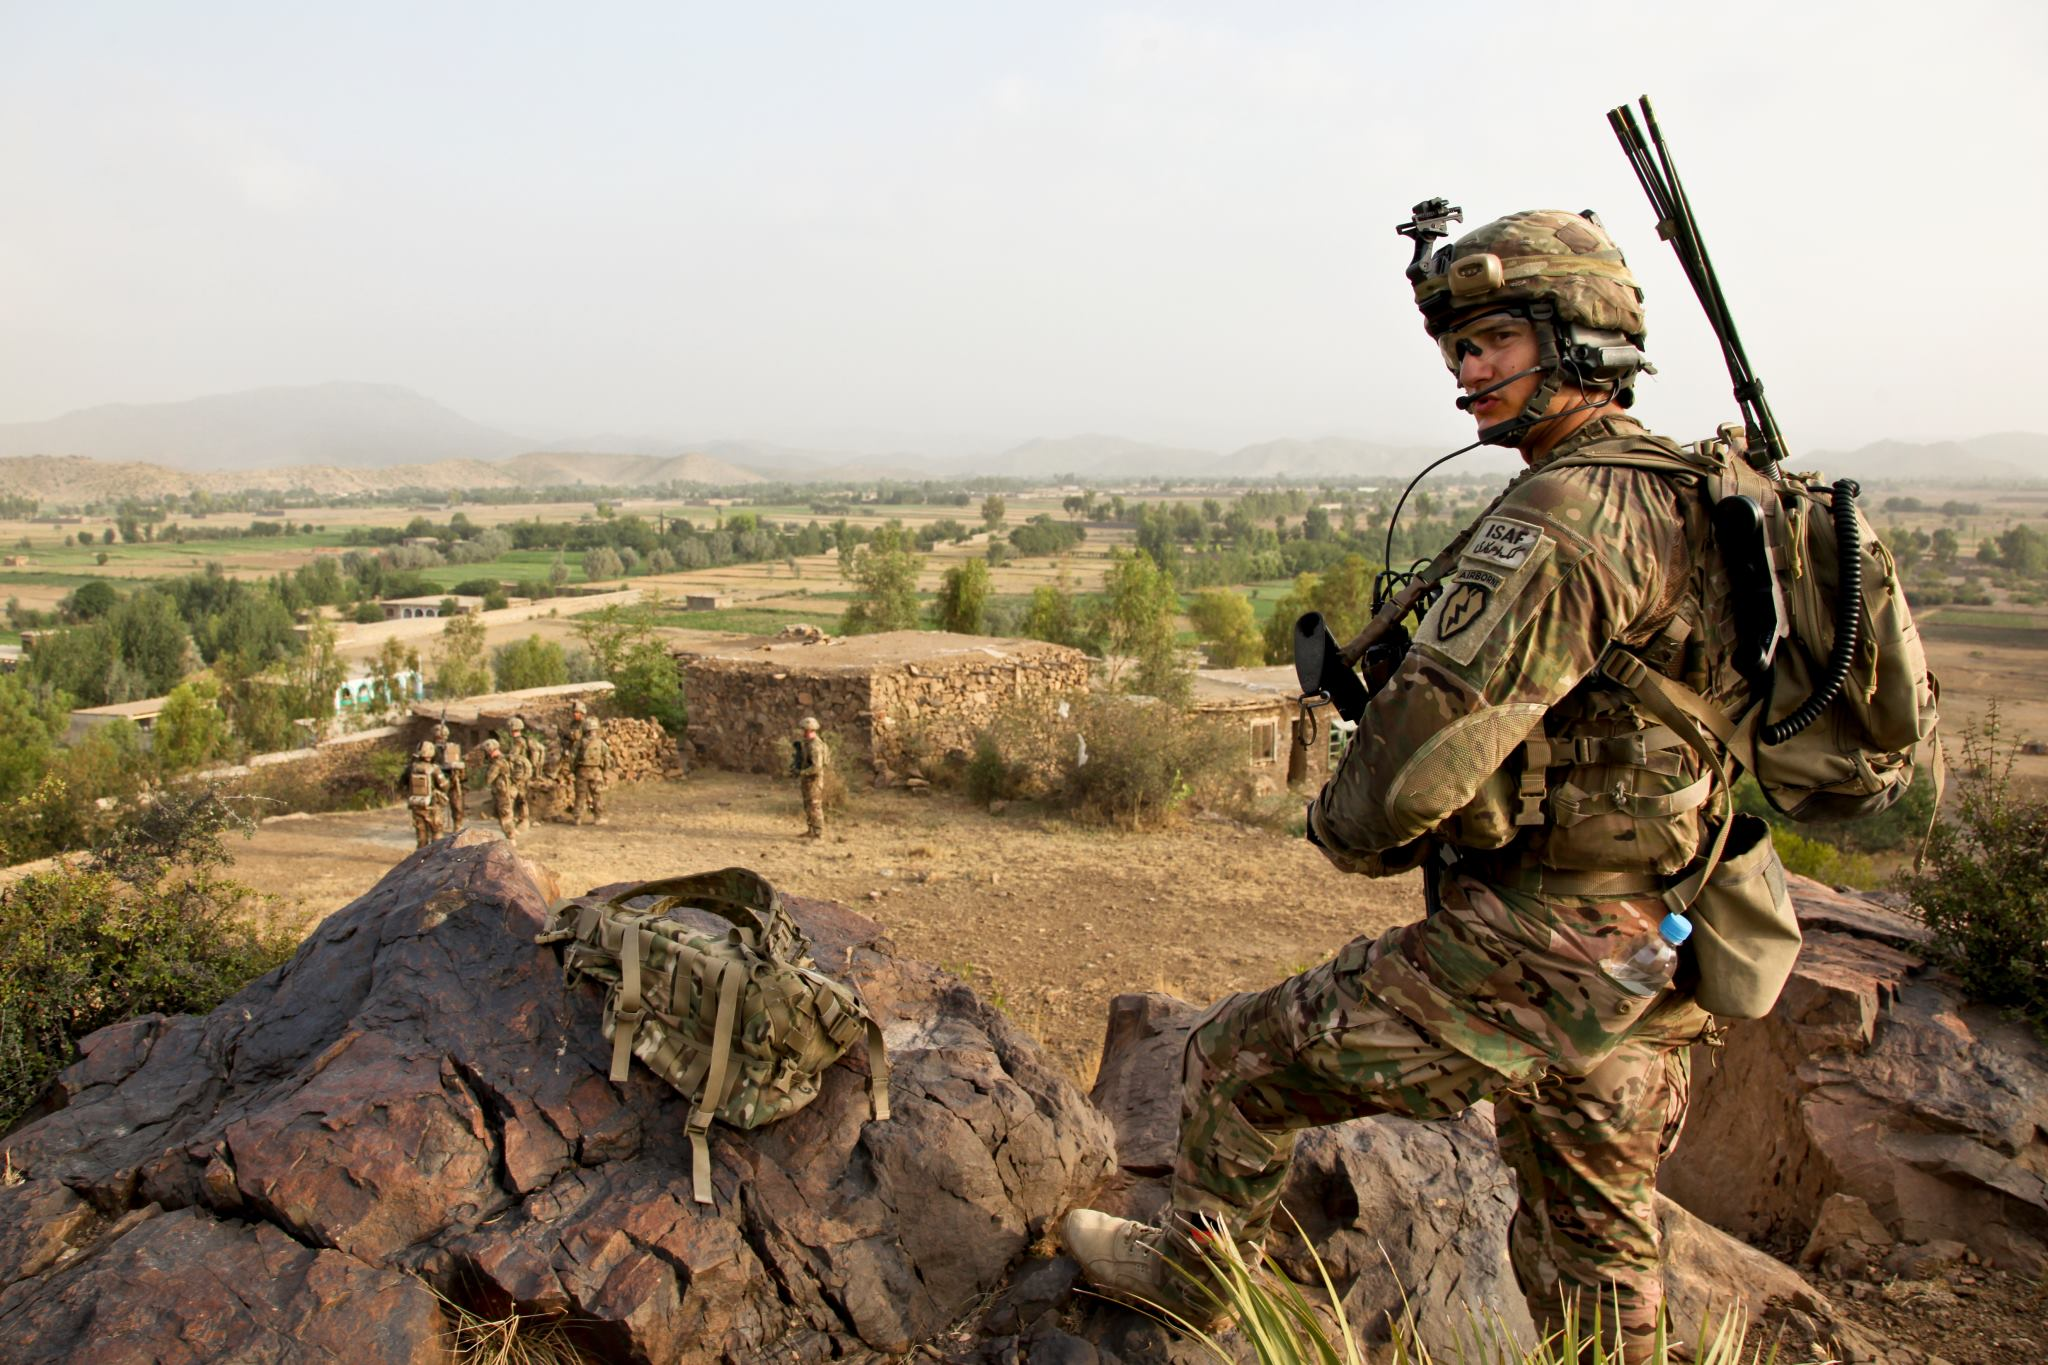 Guns and Military U.S. Army Spc. Jordan Duffy, a forward observer assigned to 1st Battalion (Airborne), 501st Infantry Regiment, 4th Brigade Combat Team (Airborne), 25th Infantry Division, provides security from the top of a hill in Afghanistan, July 31.